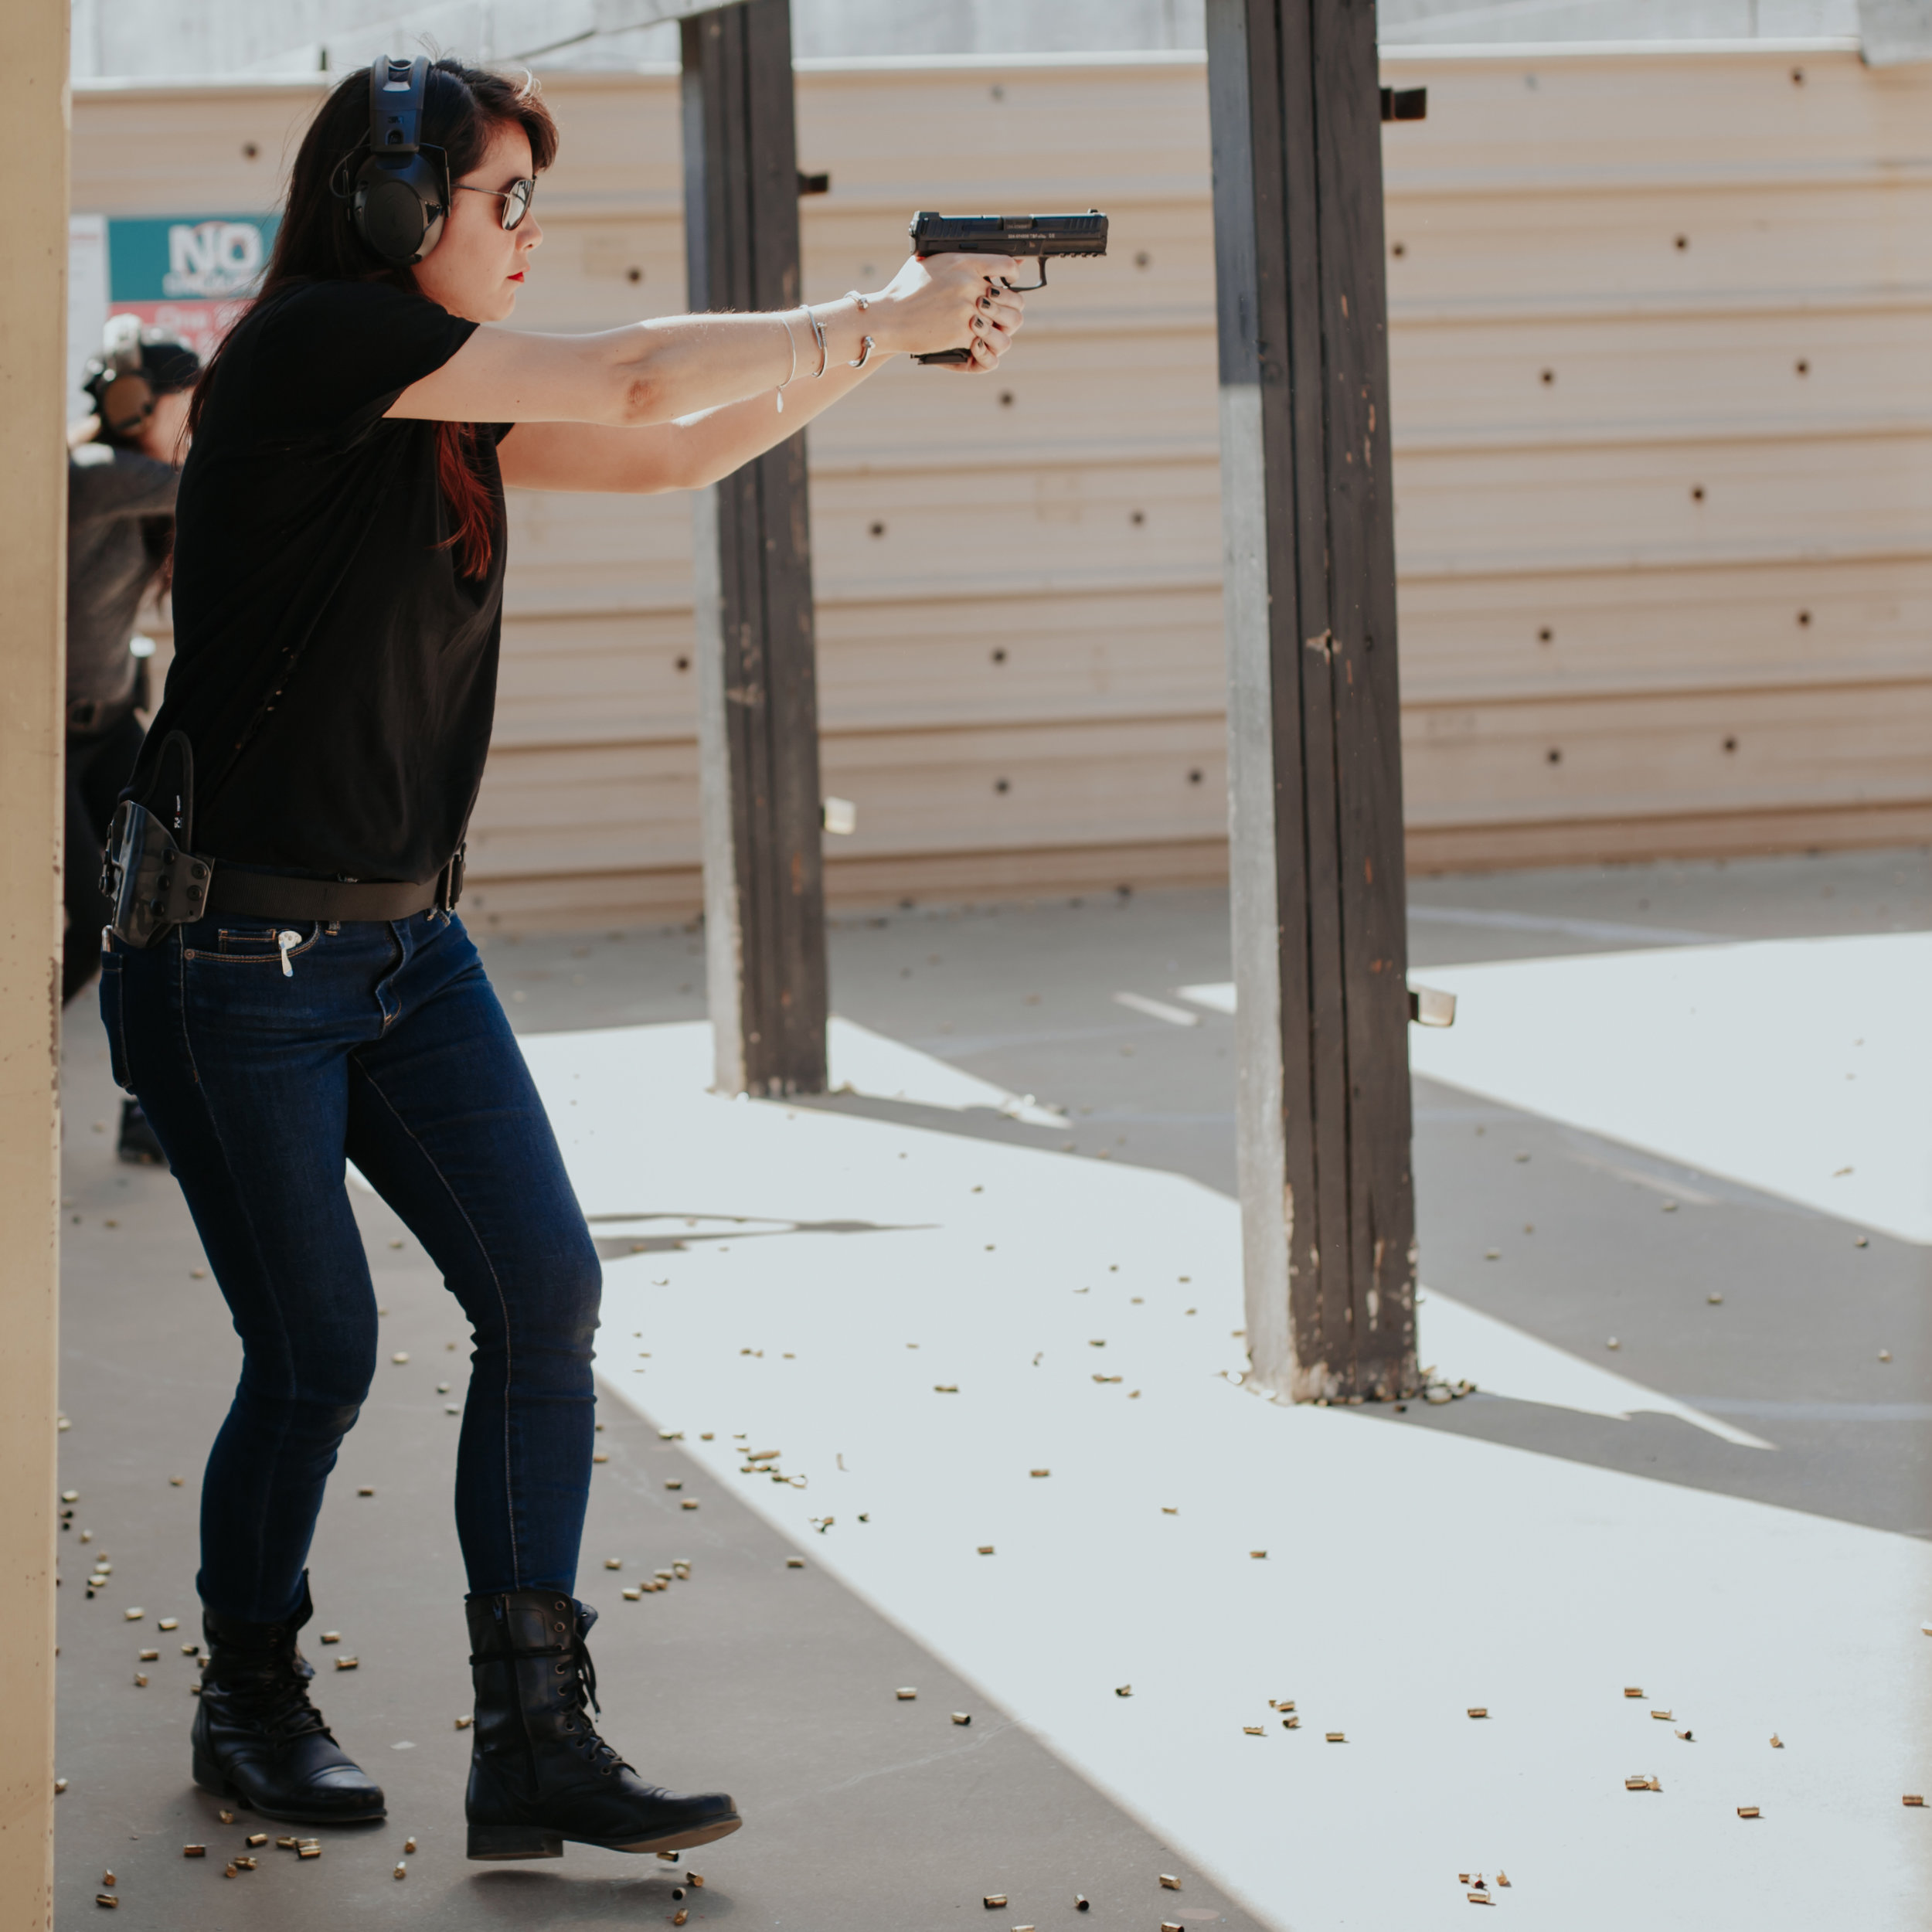 NRA Carry Guard Training